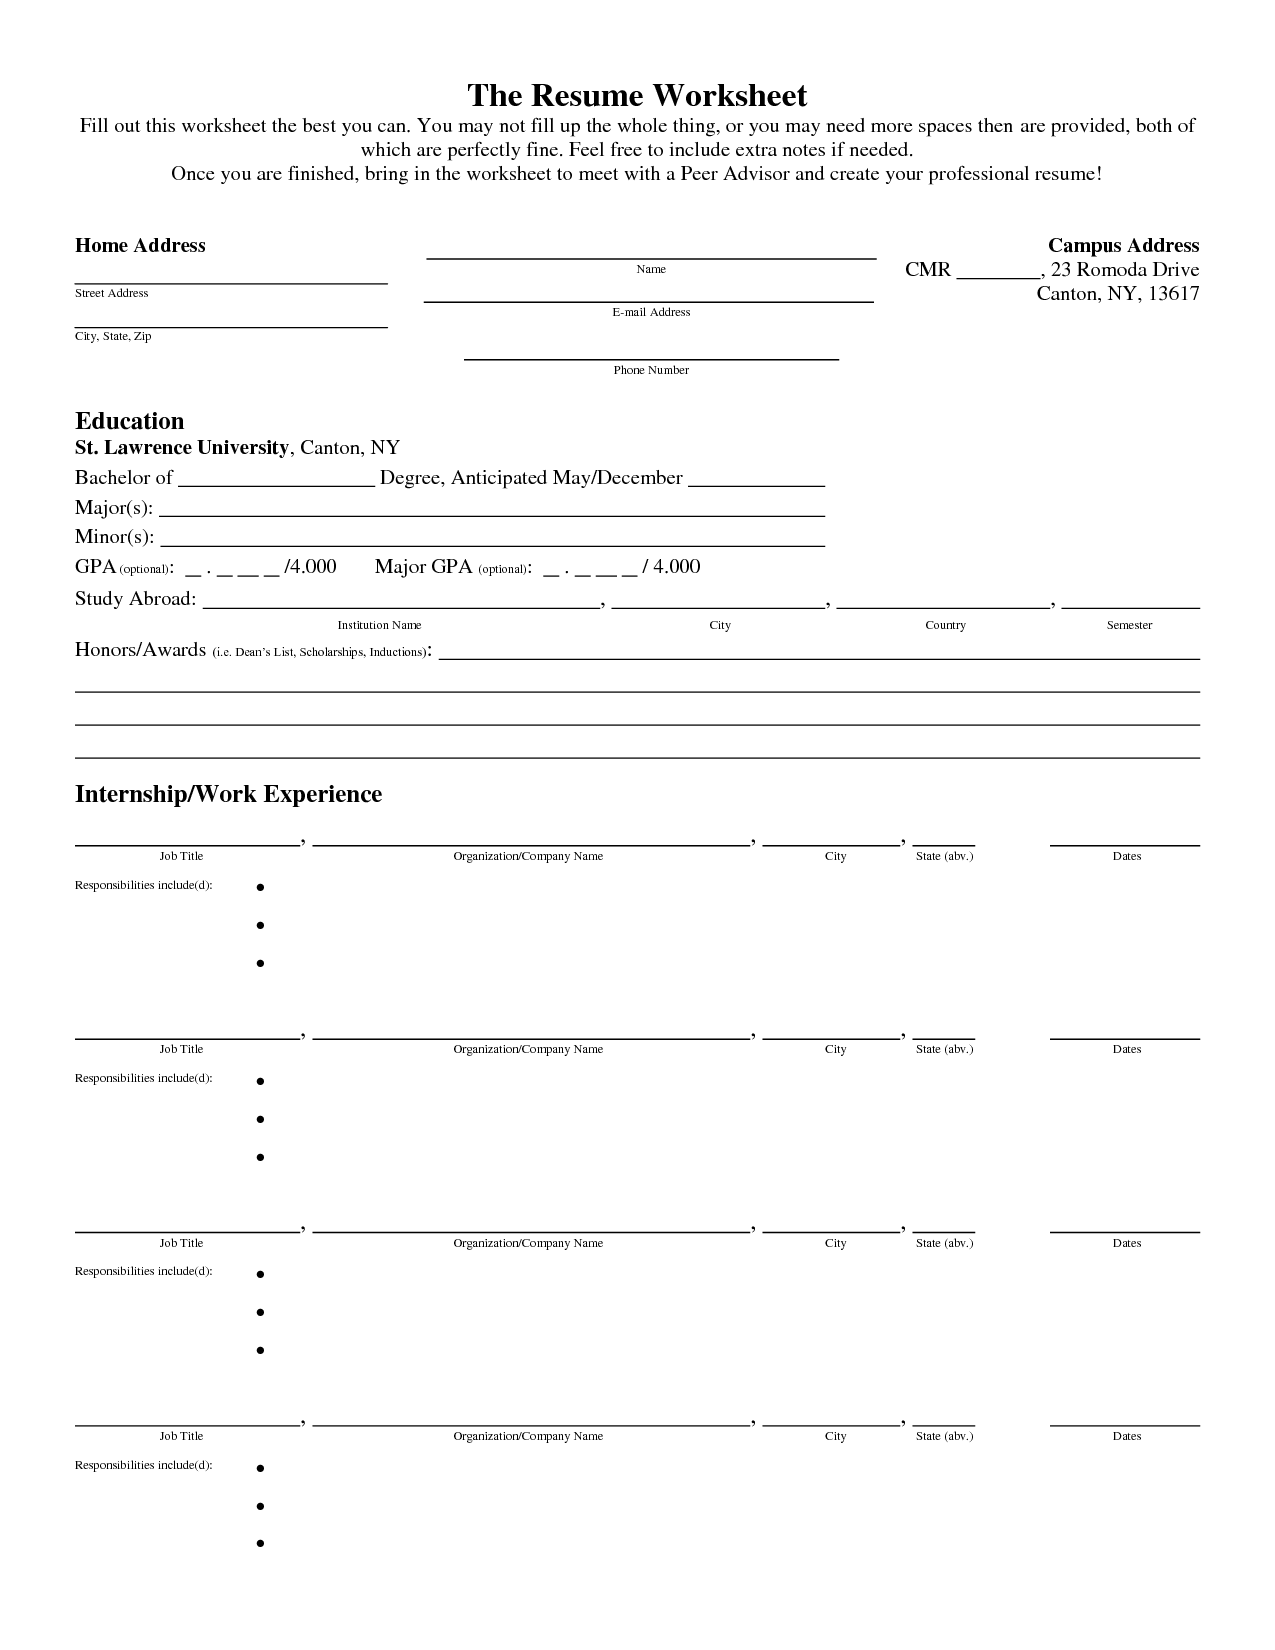 Blank Insolvency Worksheet